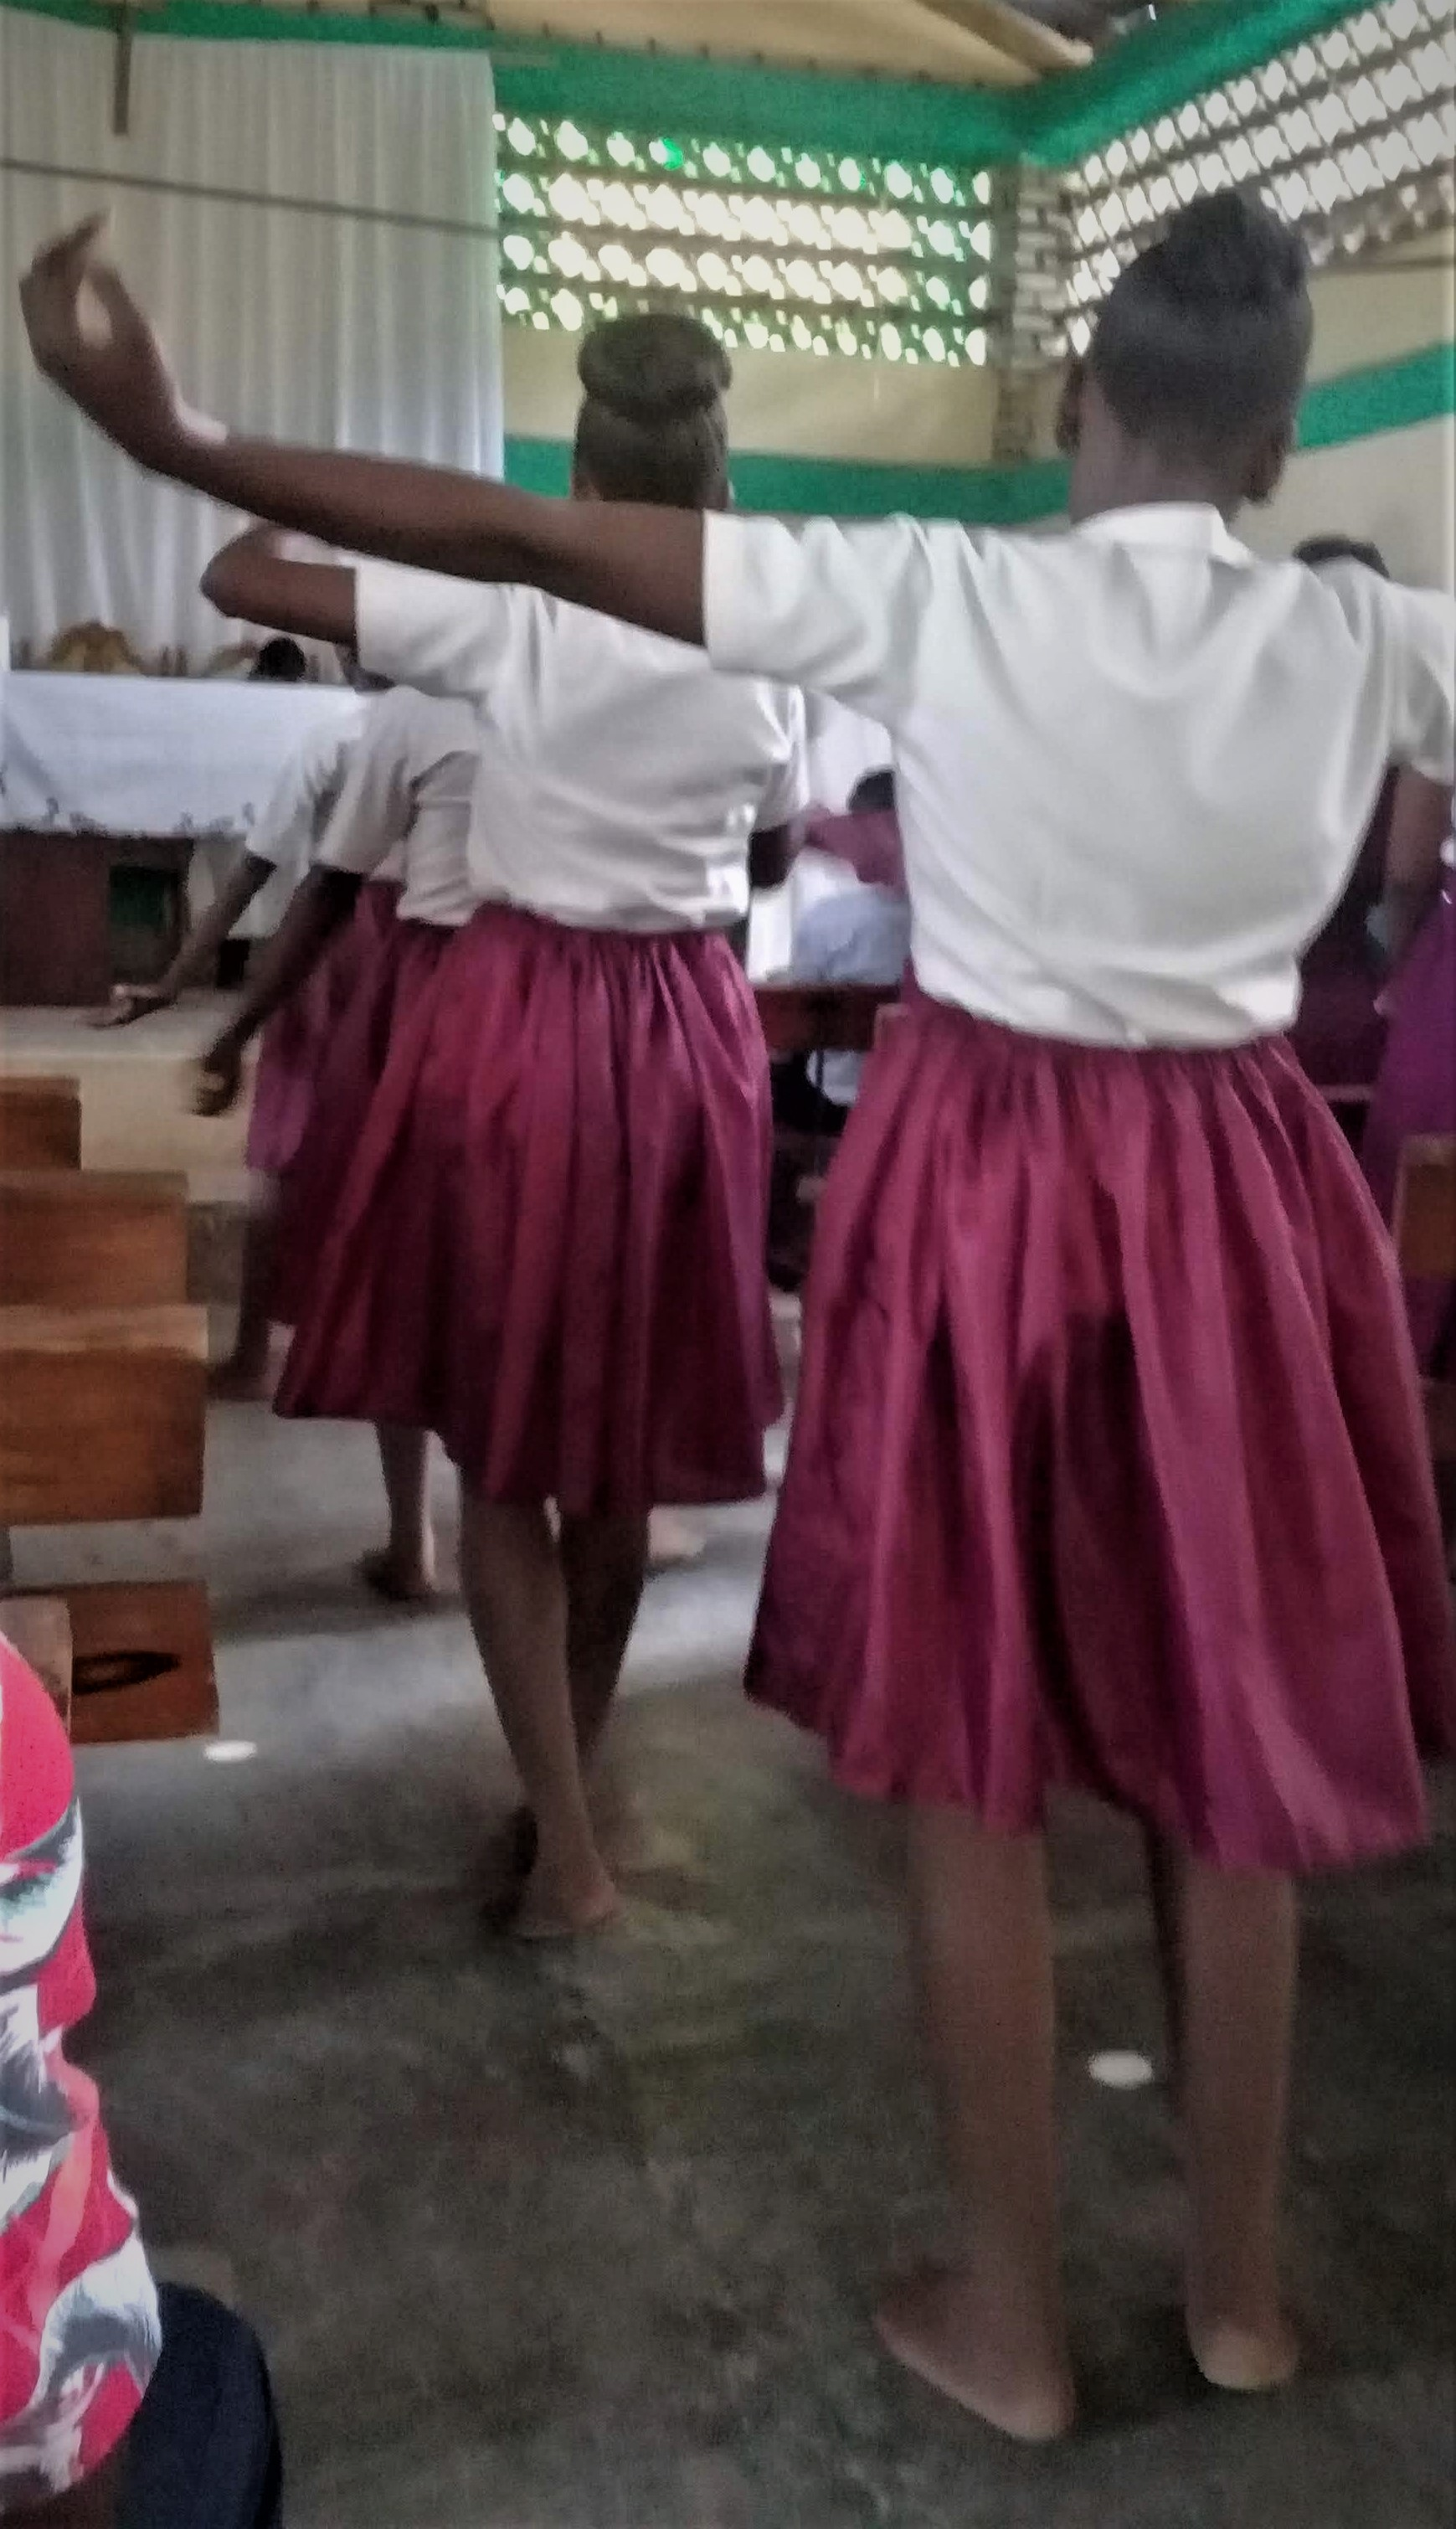 Liturgical dancing at the Papaye Catholic chapel on Sunday, May 19. Since I came to Haiti on Friday, I had time to attend mass on Sunday. The Papaye chapel is where I worshipped from 2004 until Jenny and I moved up the mountain in January 2009.